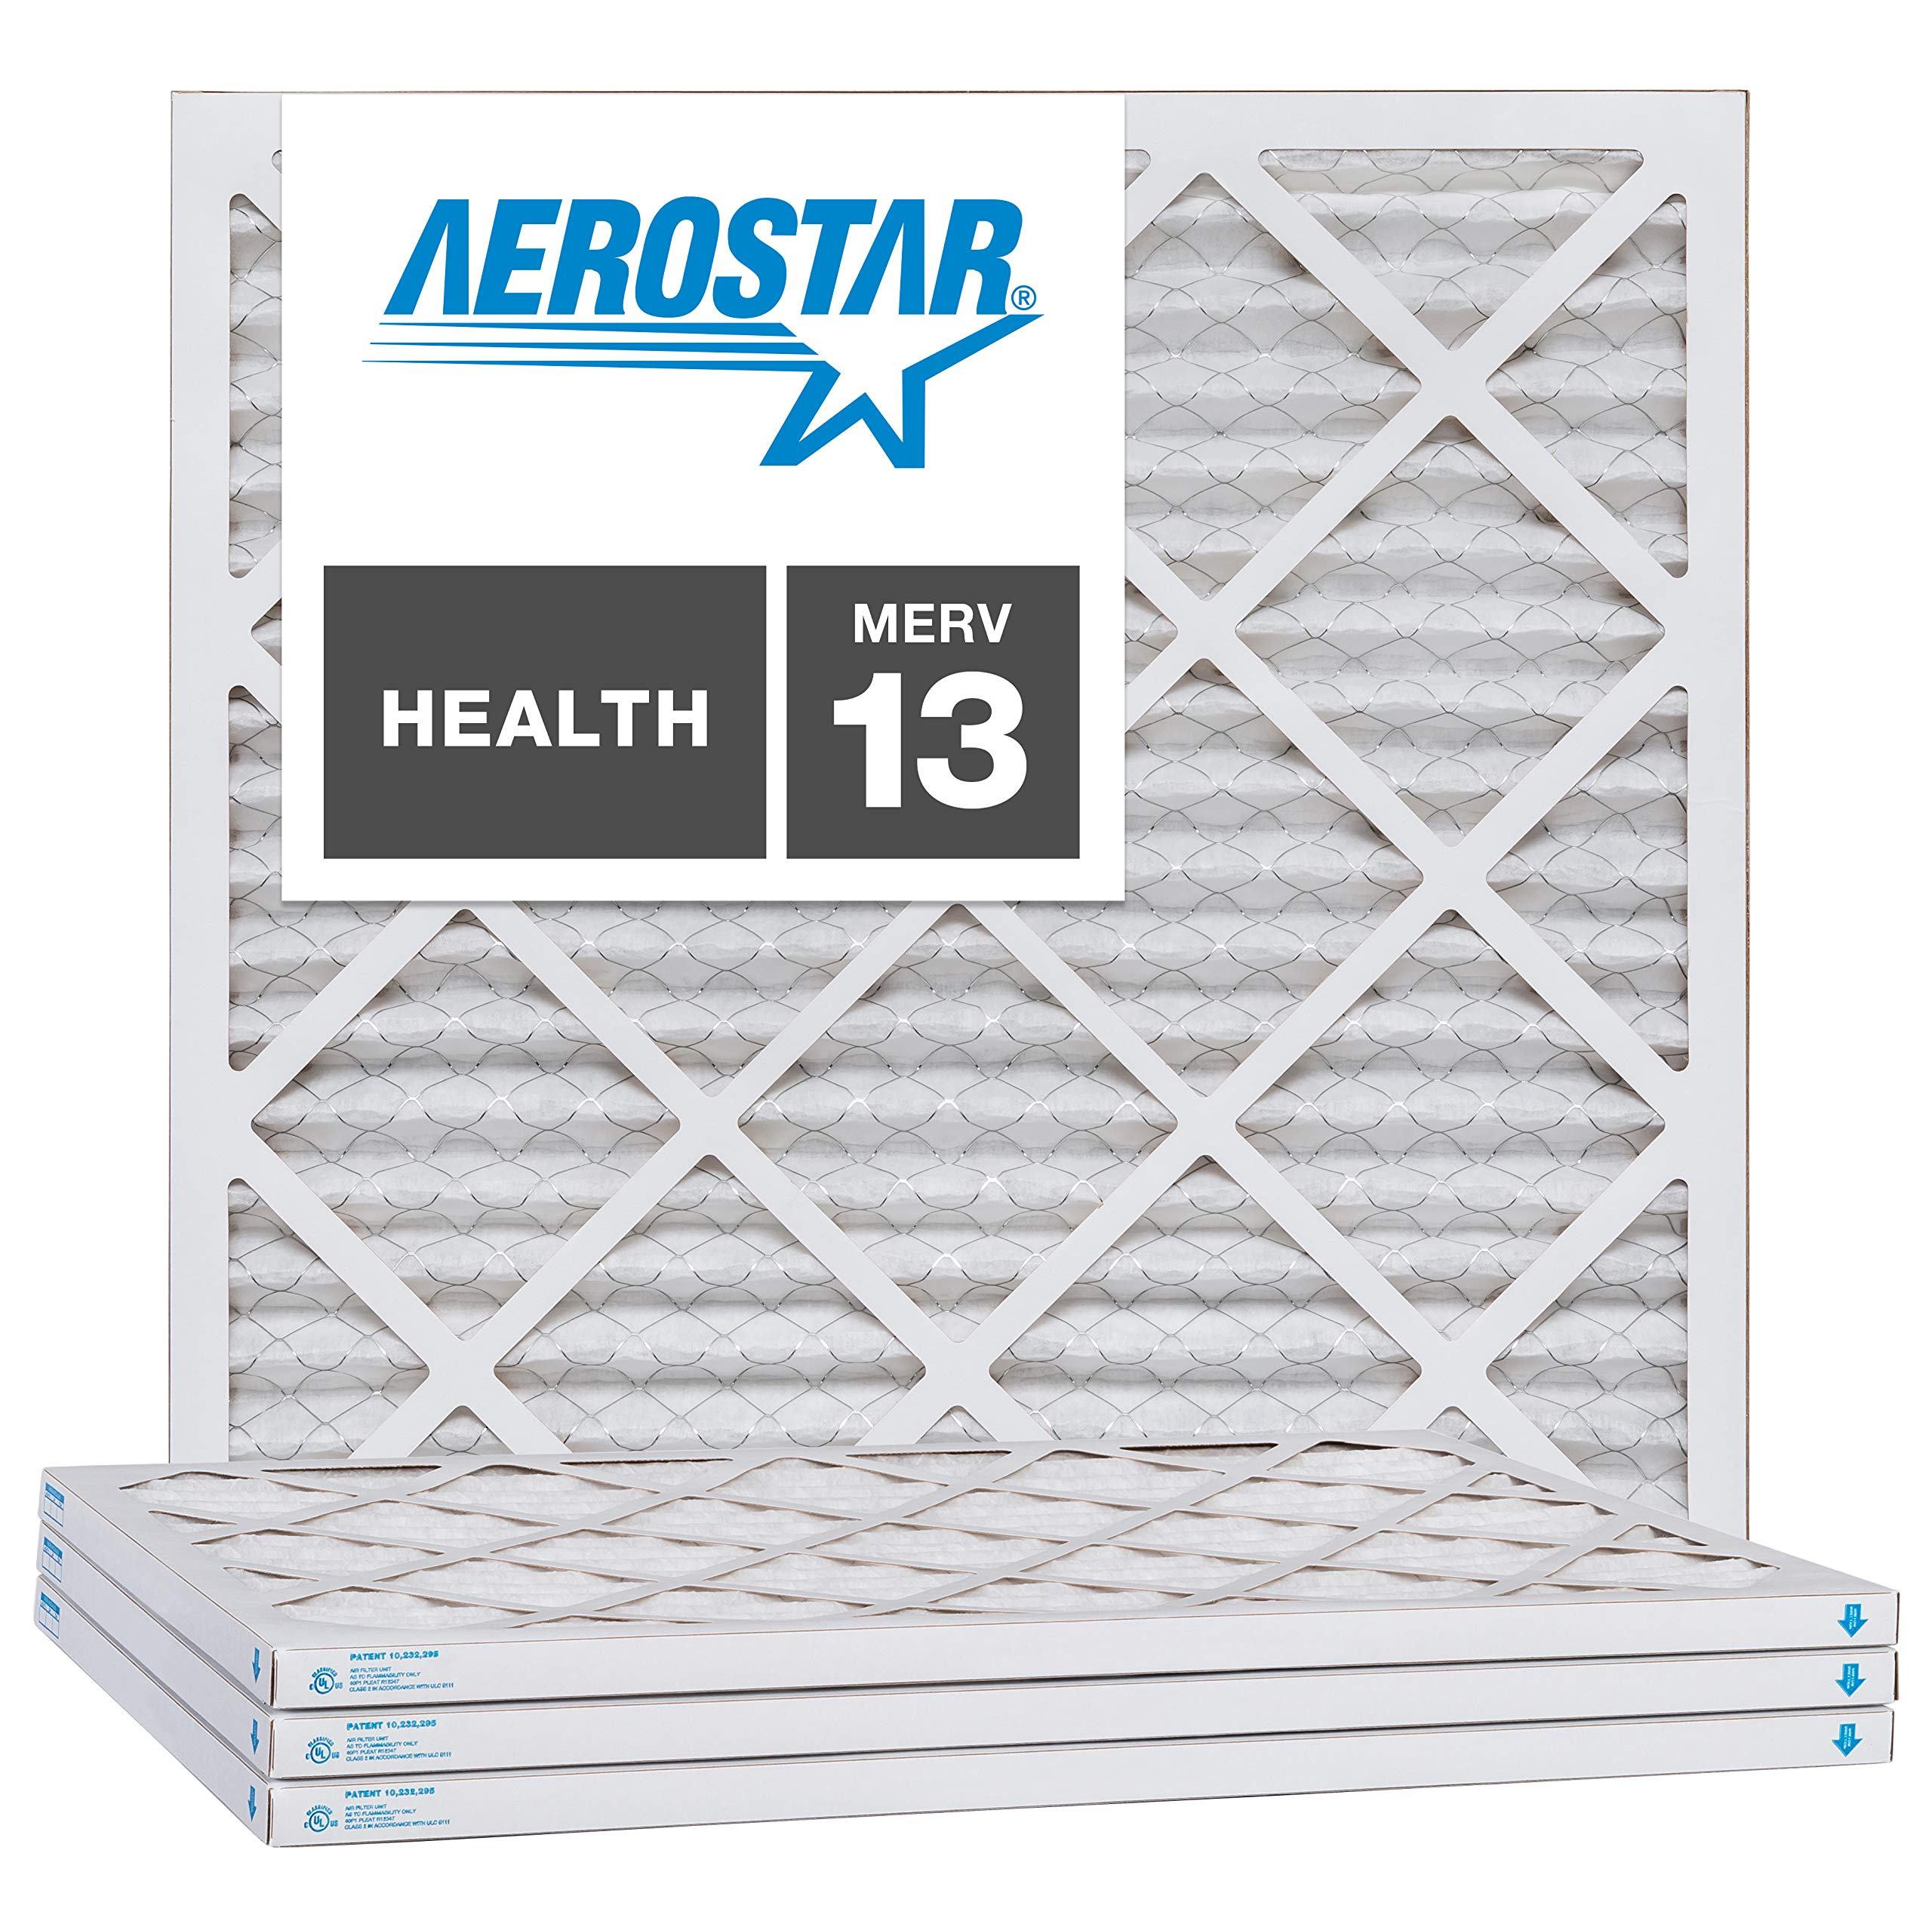 Aerostar 20x20x1 MERV 13, MAX Allergen Protection Air Filter for a Healthy Home, 20x20x1, Box of 4, Made in The USA